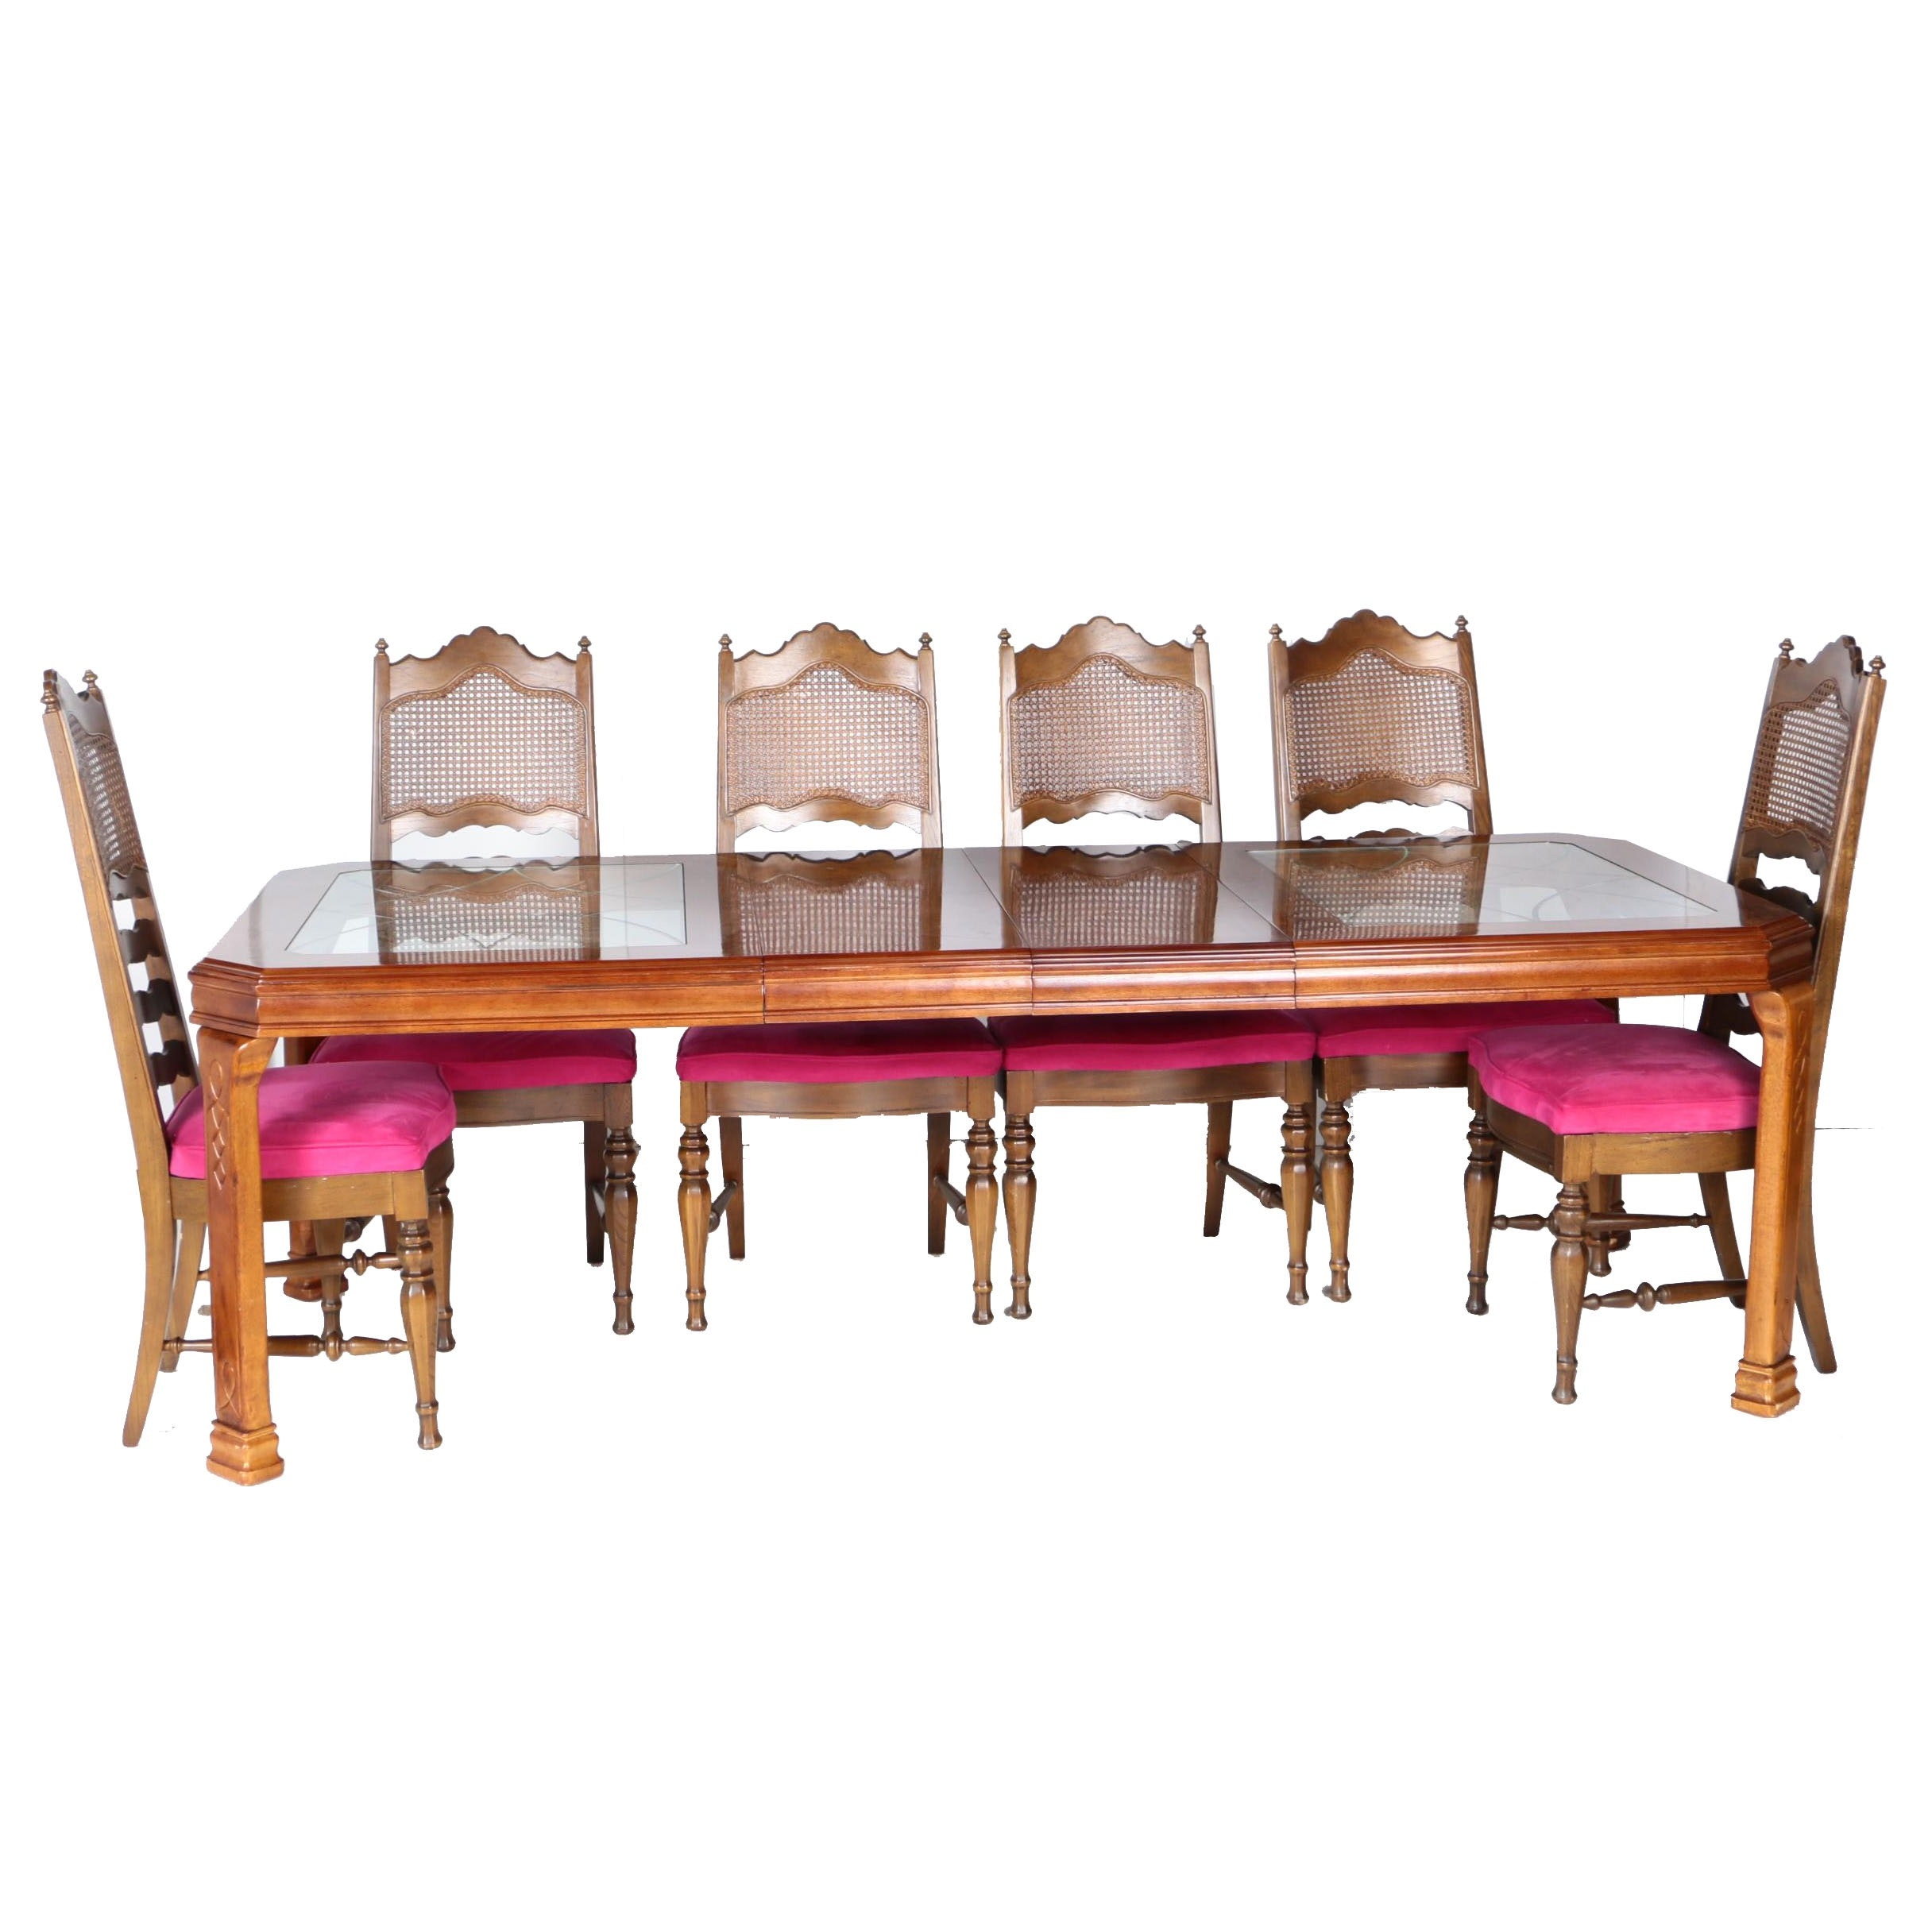 Vintage Mediterranean Style Dining Table with Side Chairs